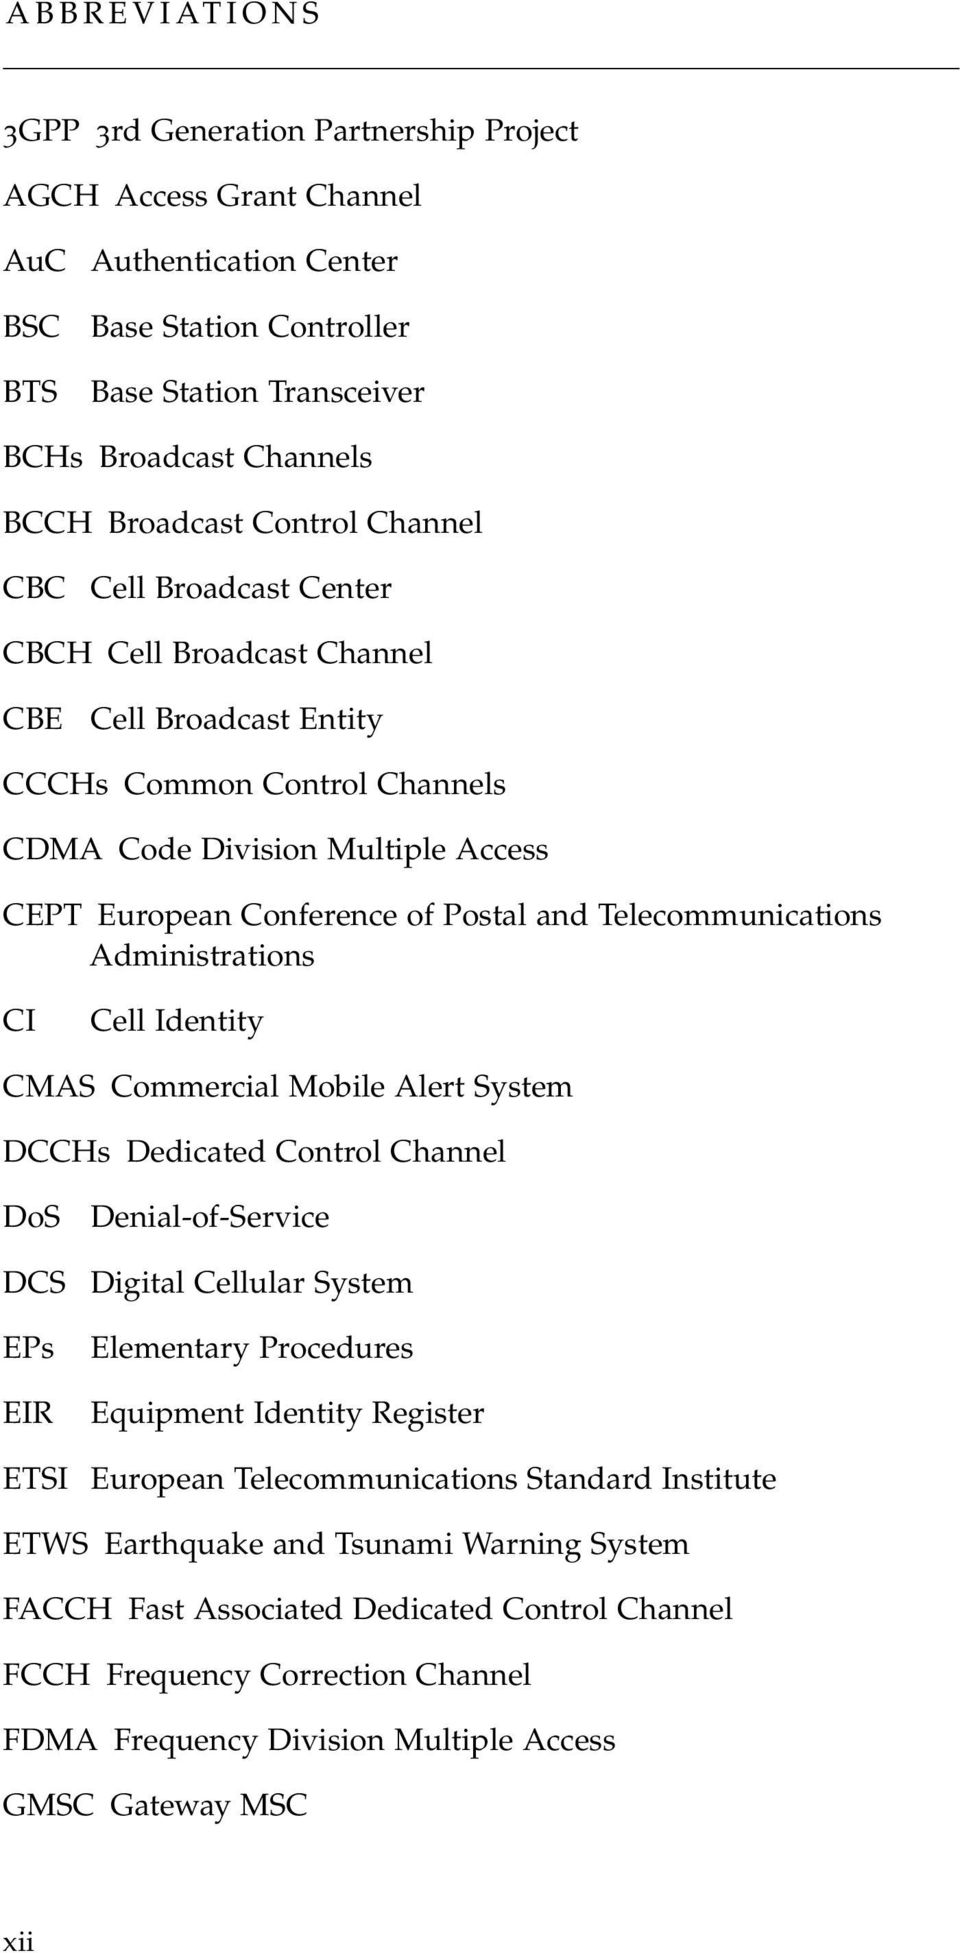 Conference of Postal and Telecommunications Administrations CI Cell Identity CMAS Commercial Mobile Alert System DCCHs Dedicated Control Channel DoS DCS EPs EIR Denial-of-Service Digital Cellular